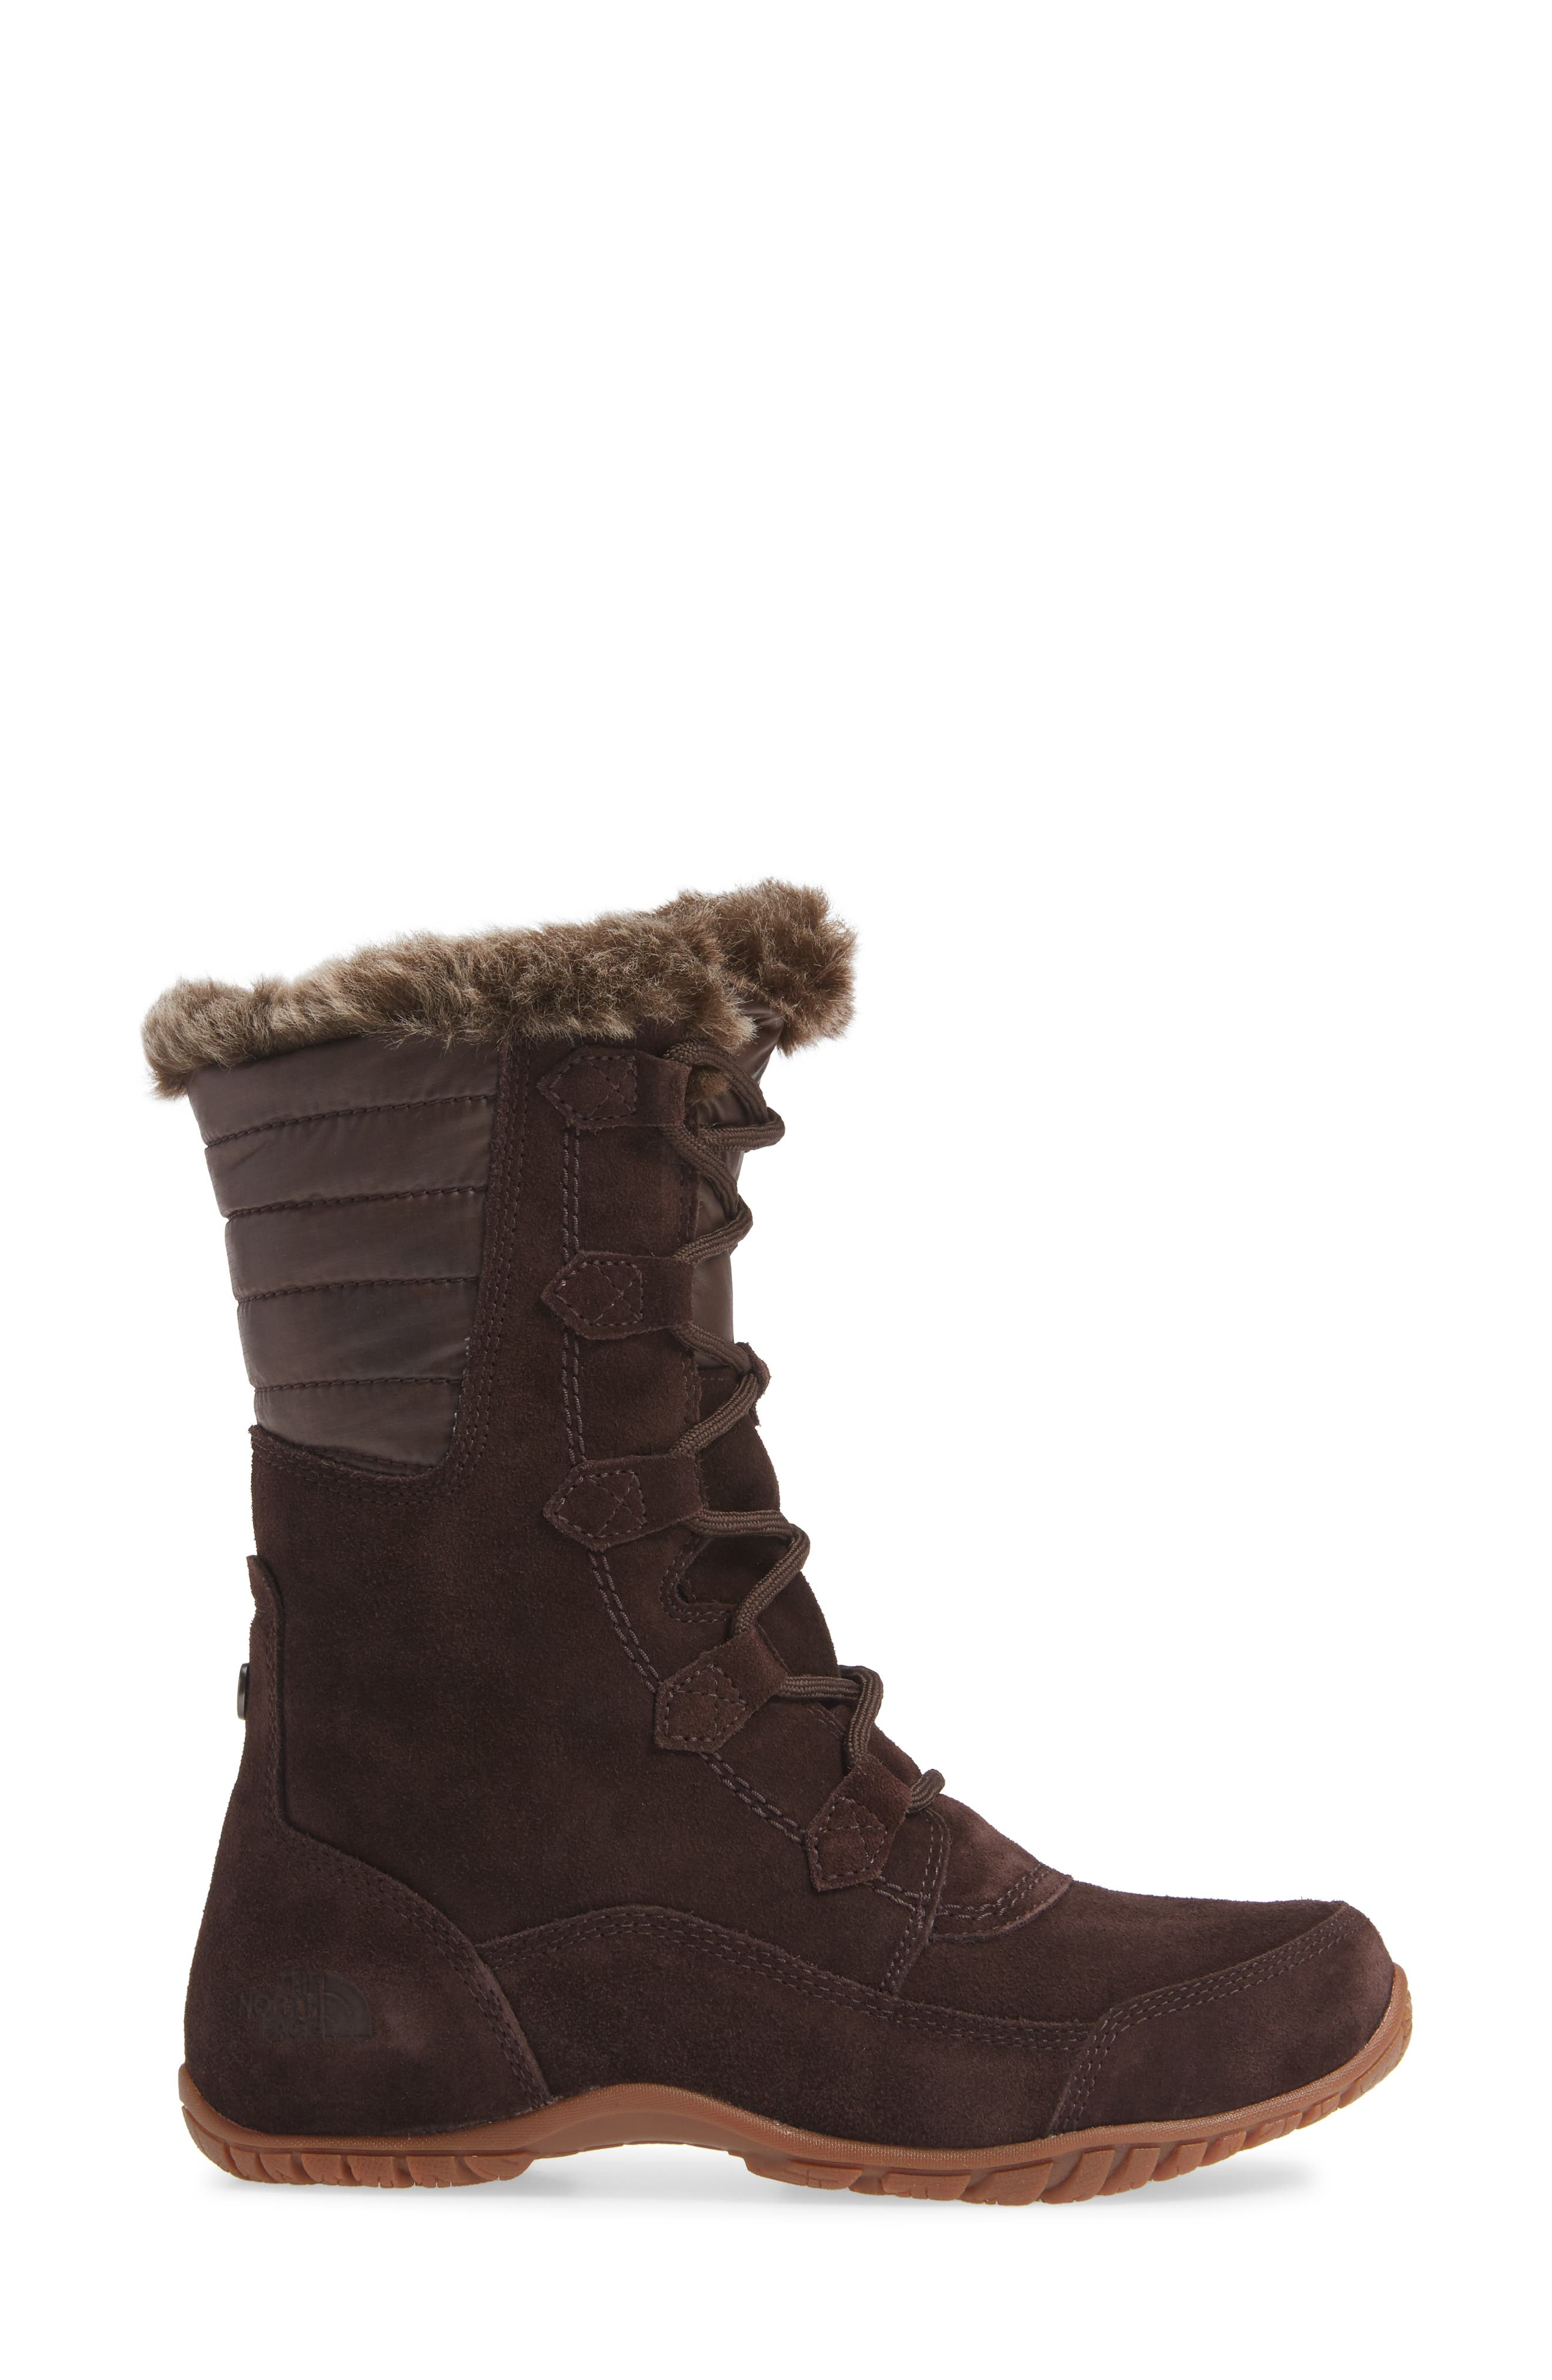 Nuptse Purna II Waterproof PrimaLoft<sup>®</sup> Silver Eco Insulated Winter Boot,                             Alternate thumbnail 3, color,                             201